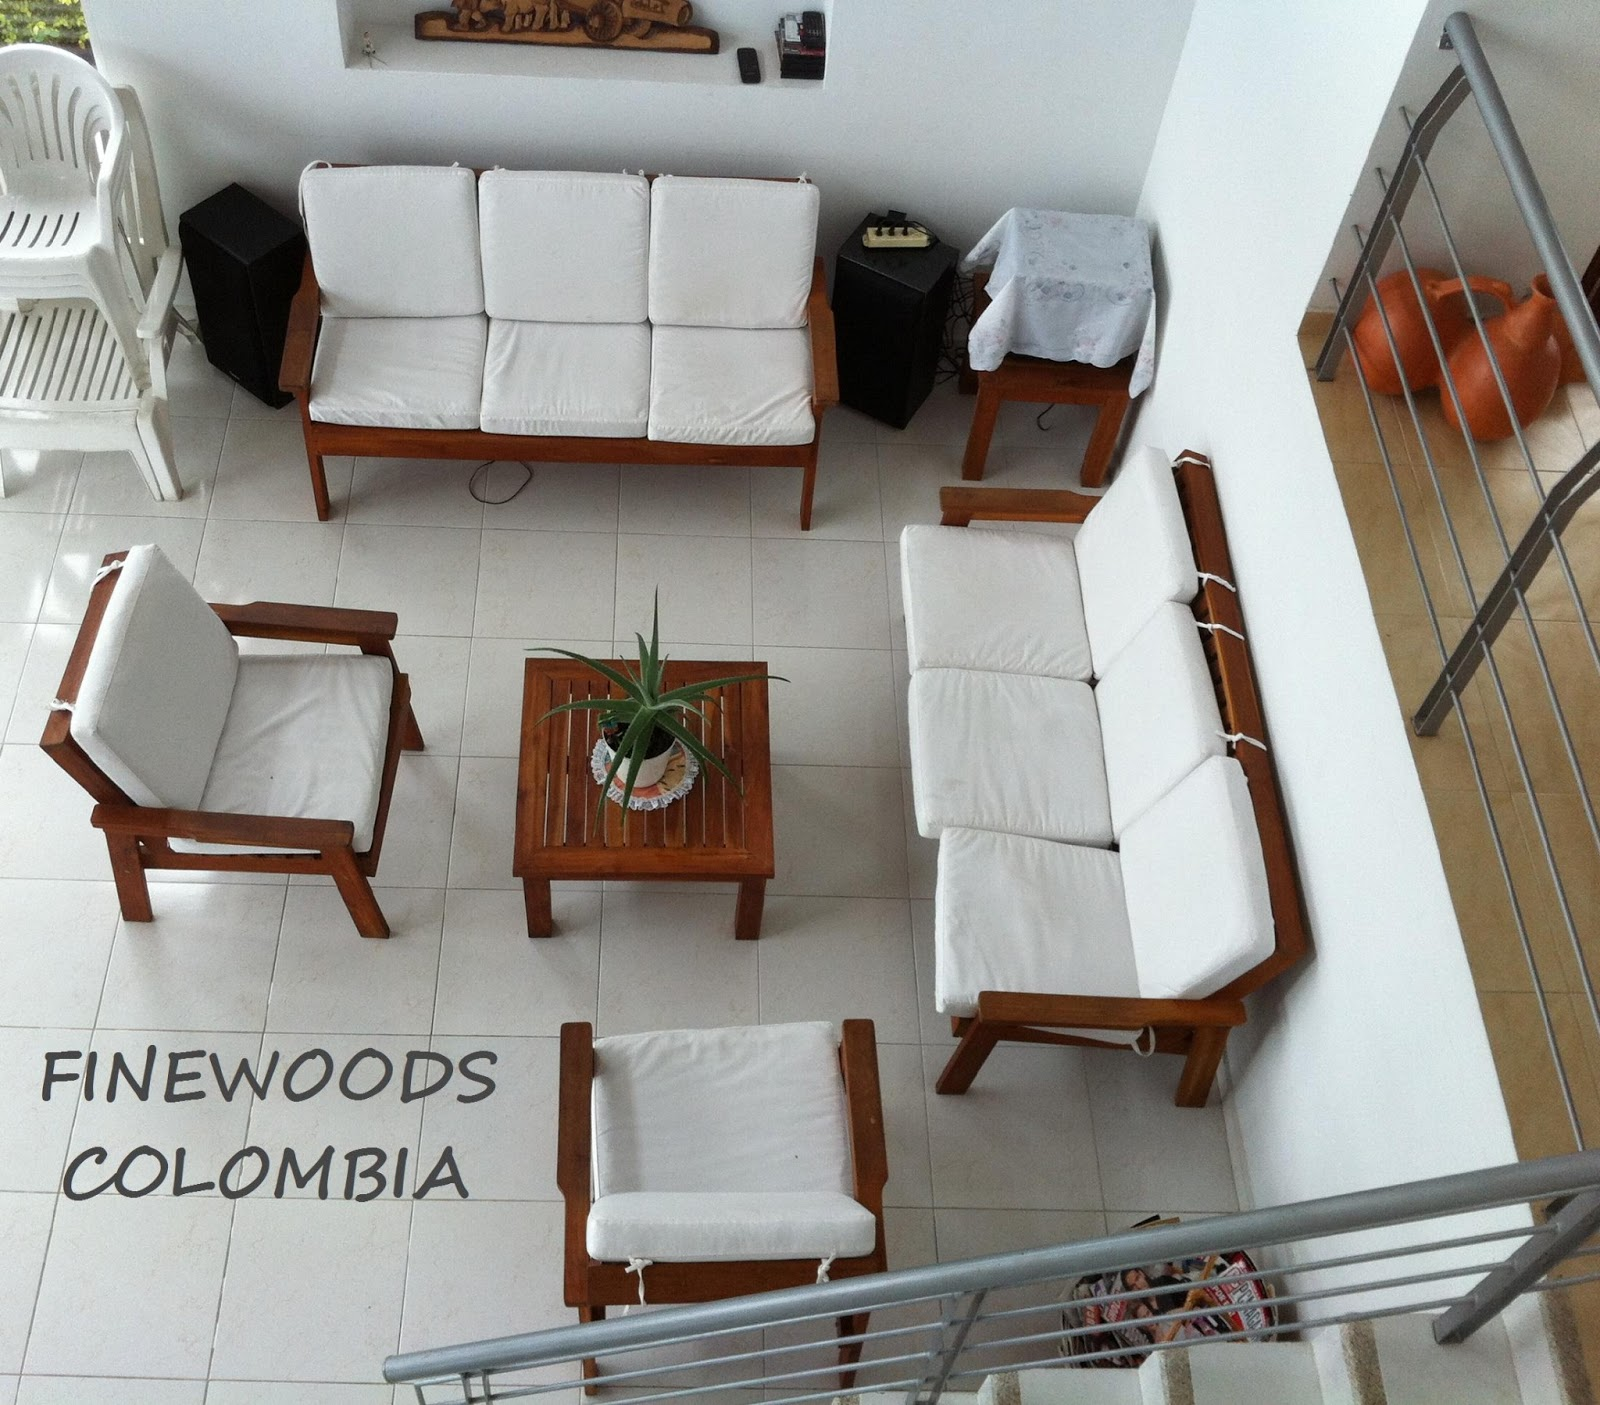 Finewoods Colombia Muebles Exterior